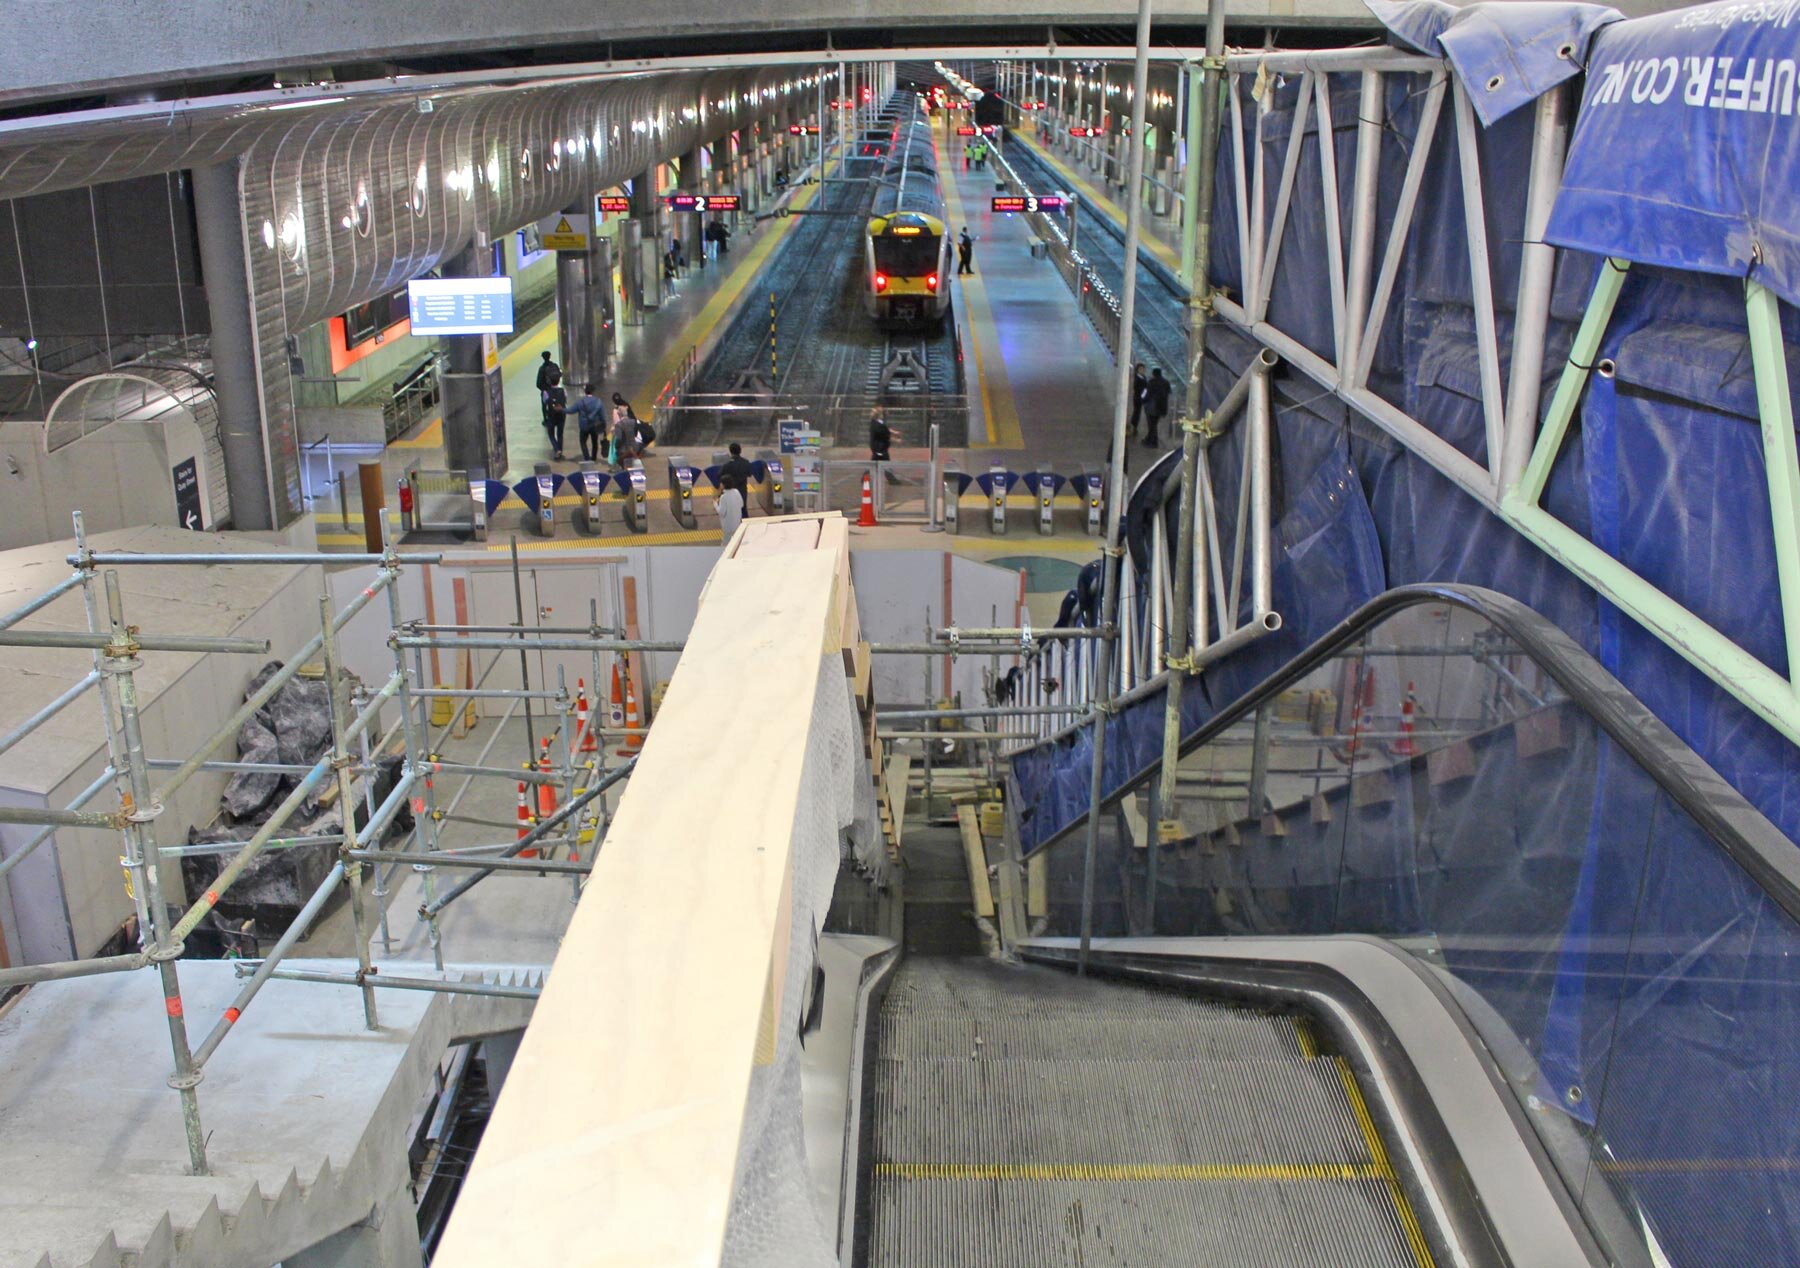 The new metro-grade escalators will replace the old ones